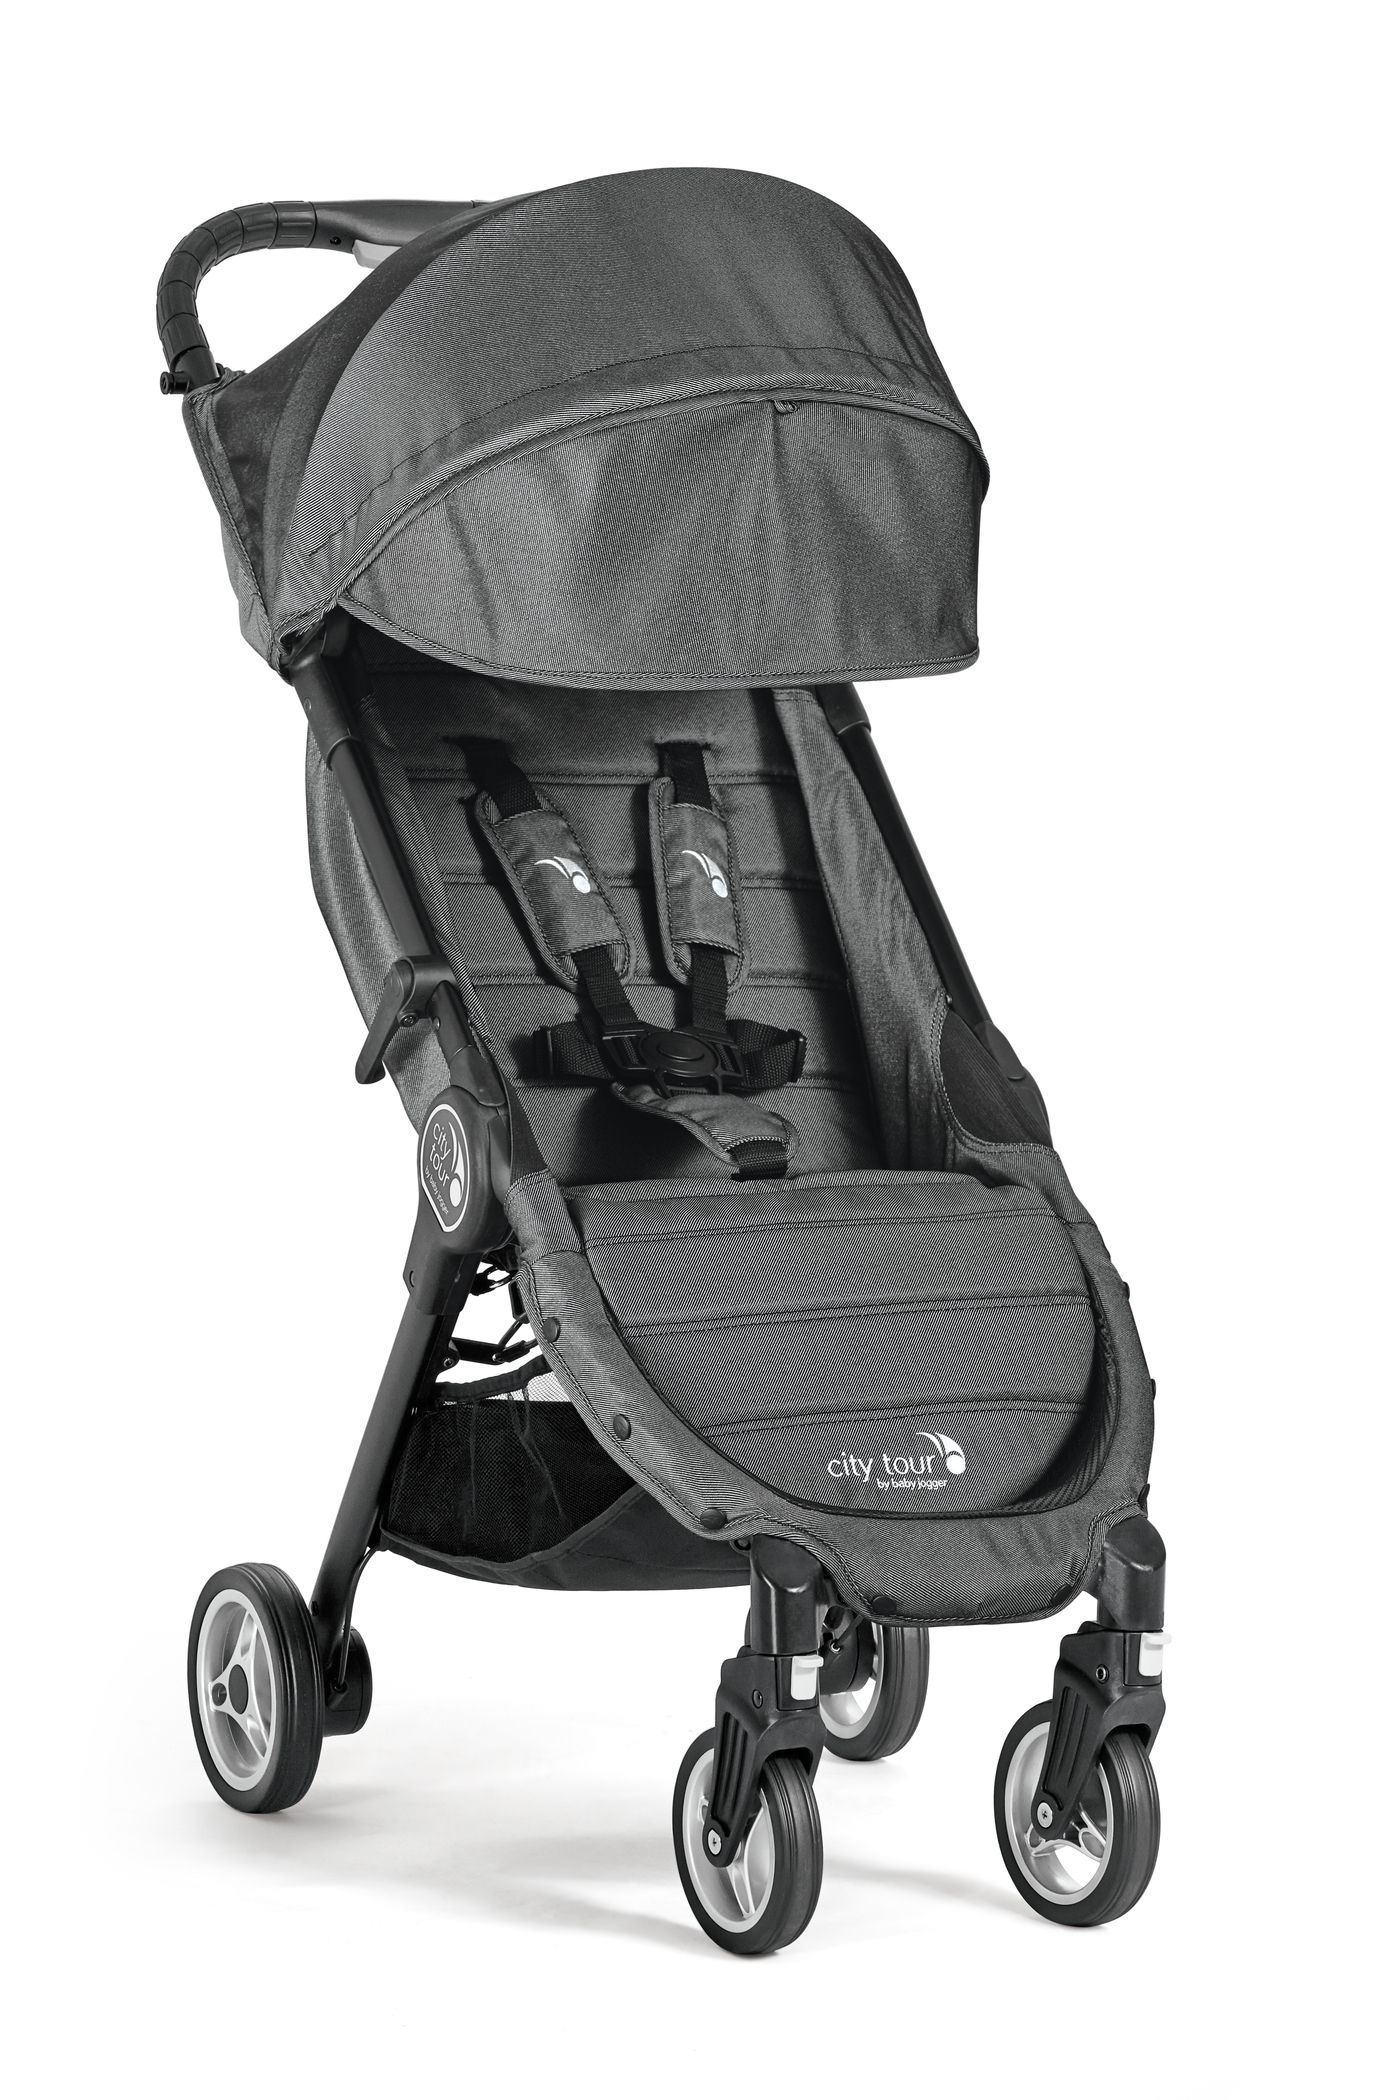 Buy City Tour The newest addition to the Baby Jogger